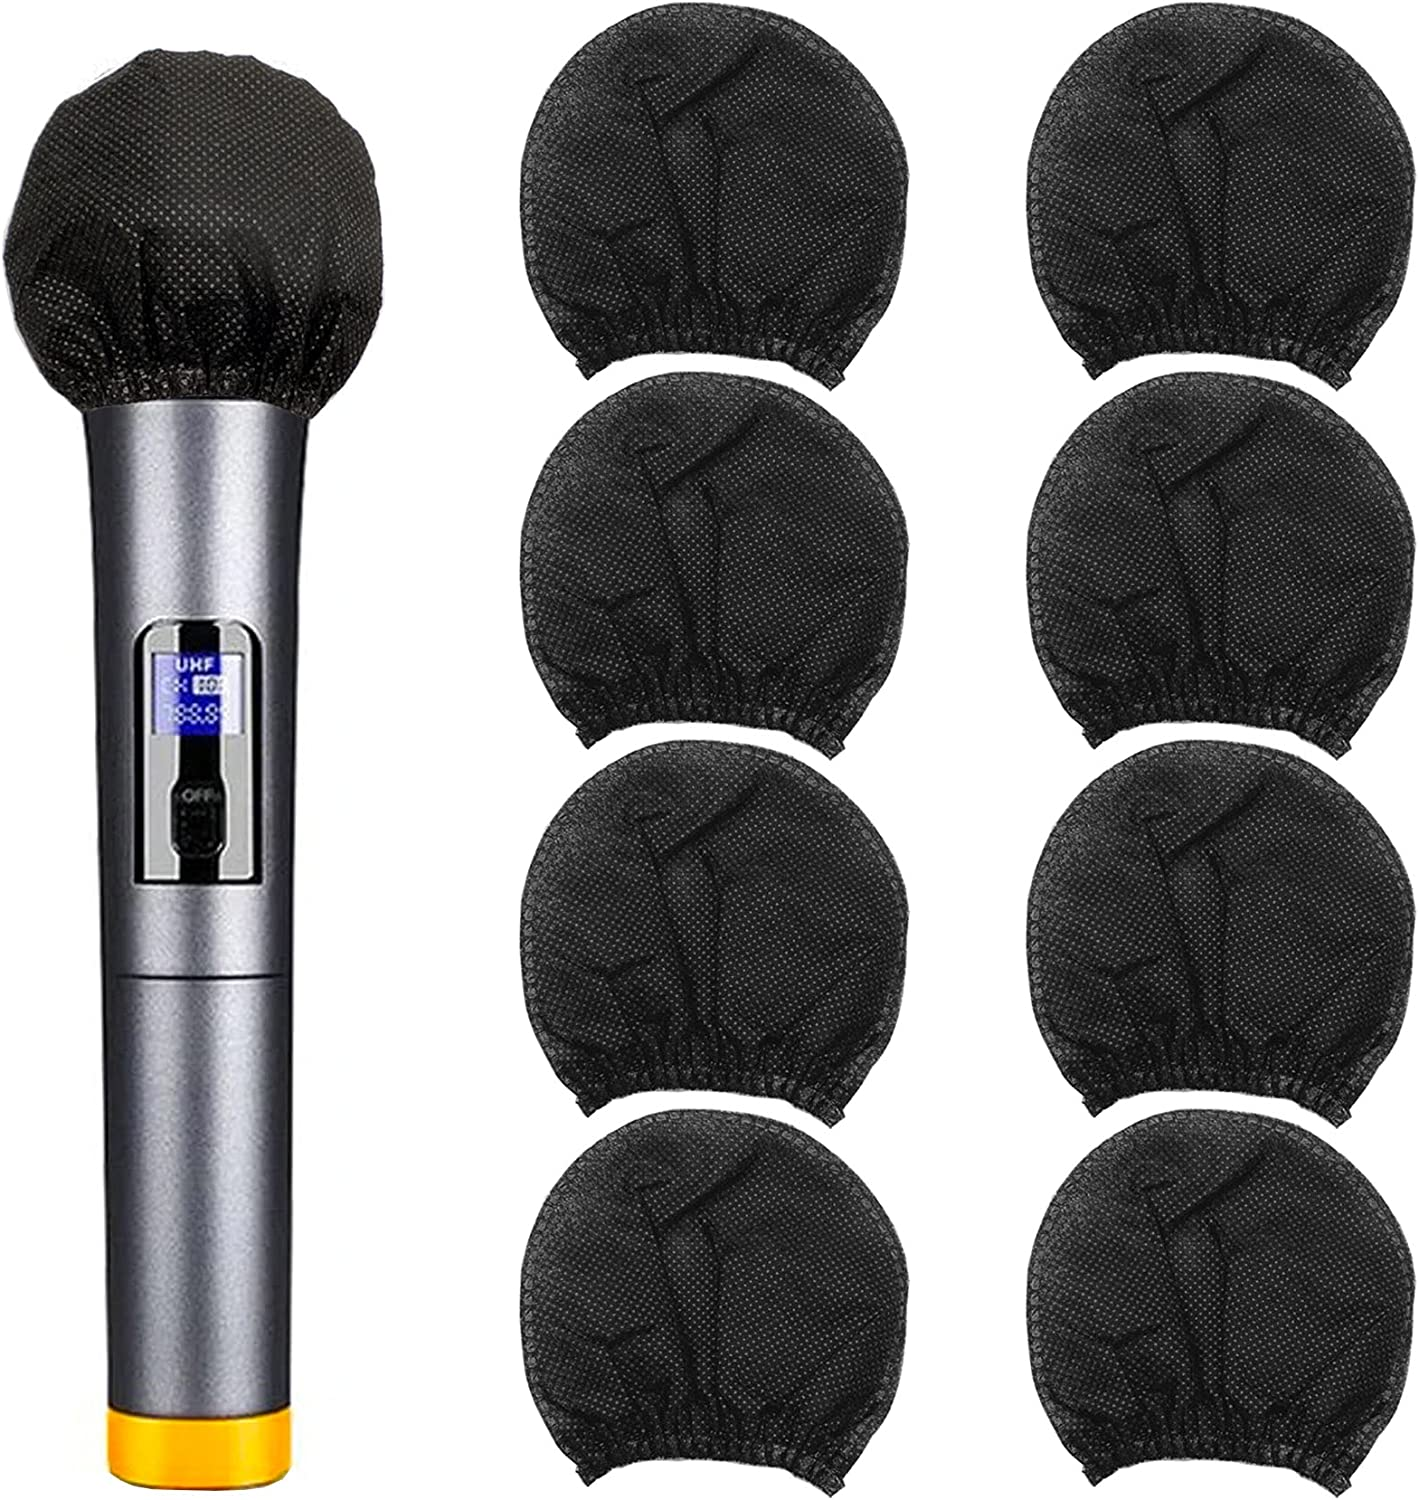 200pcs Disposable Year-end annual account Microphone Cover Band Max 54% OFF Elastic Handh Non-Woven